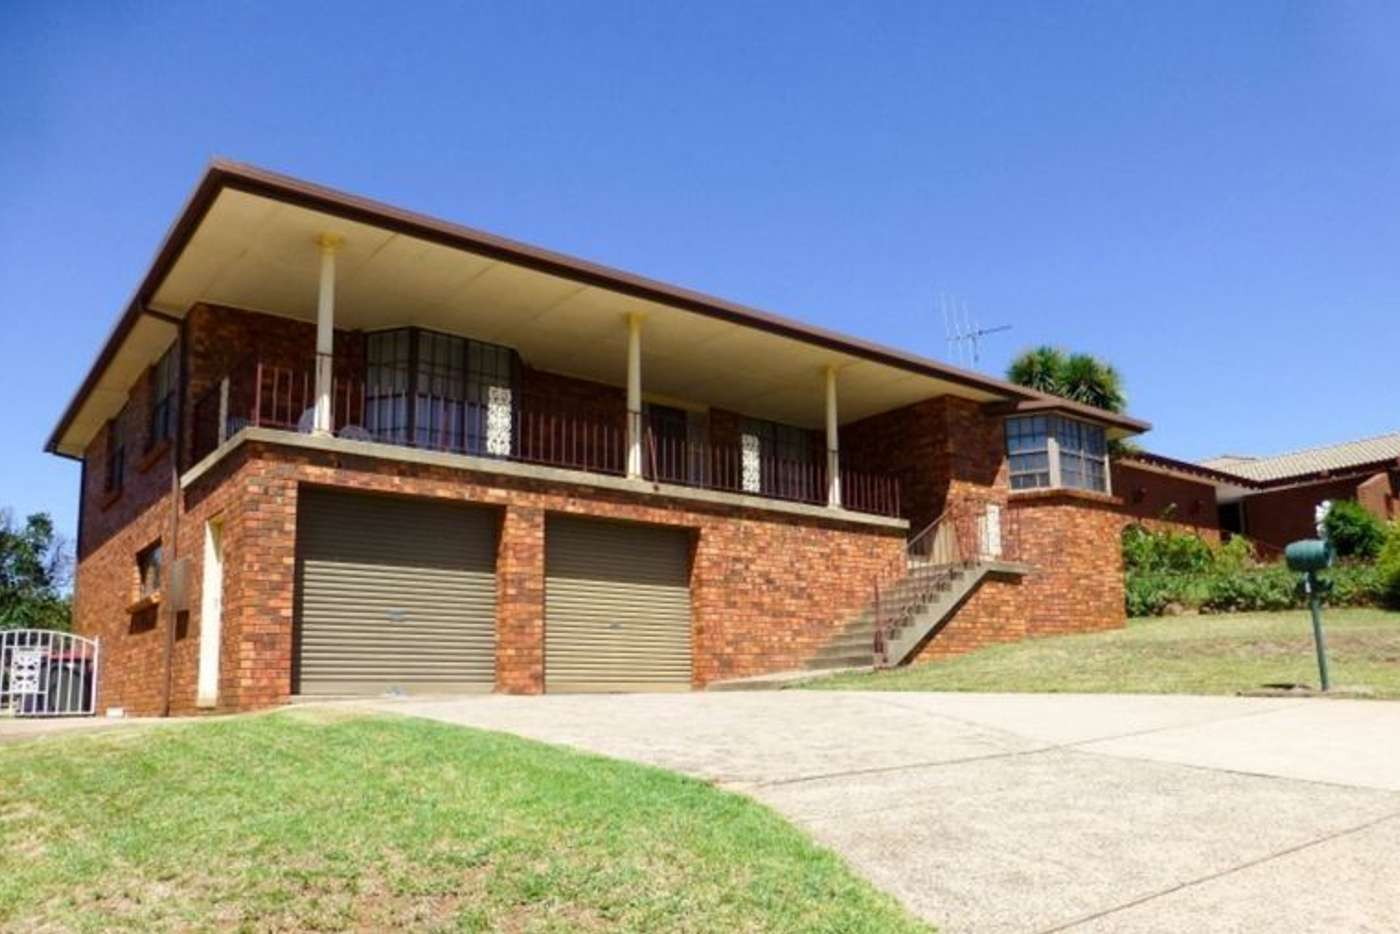 Main view of Homely house listing, 36 Anson Street, Orange NSW 2800